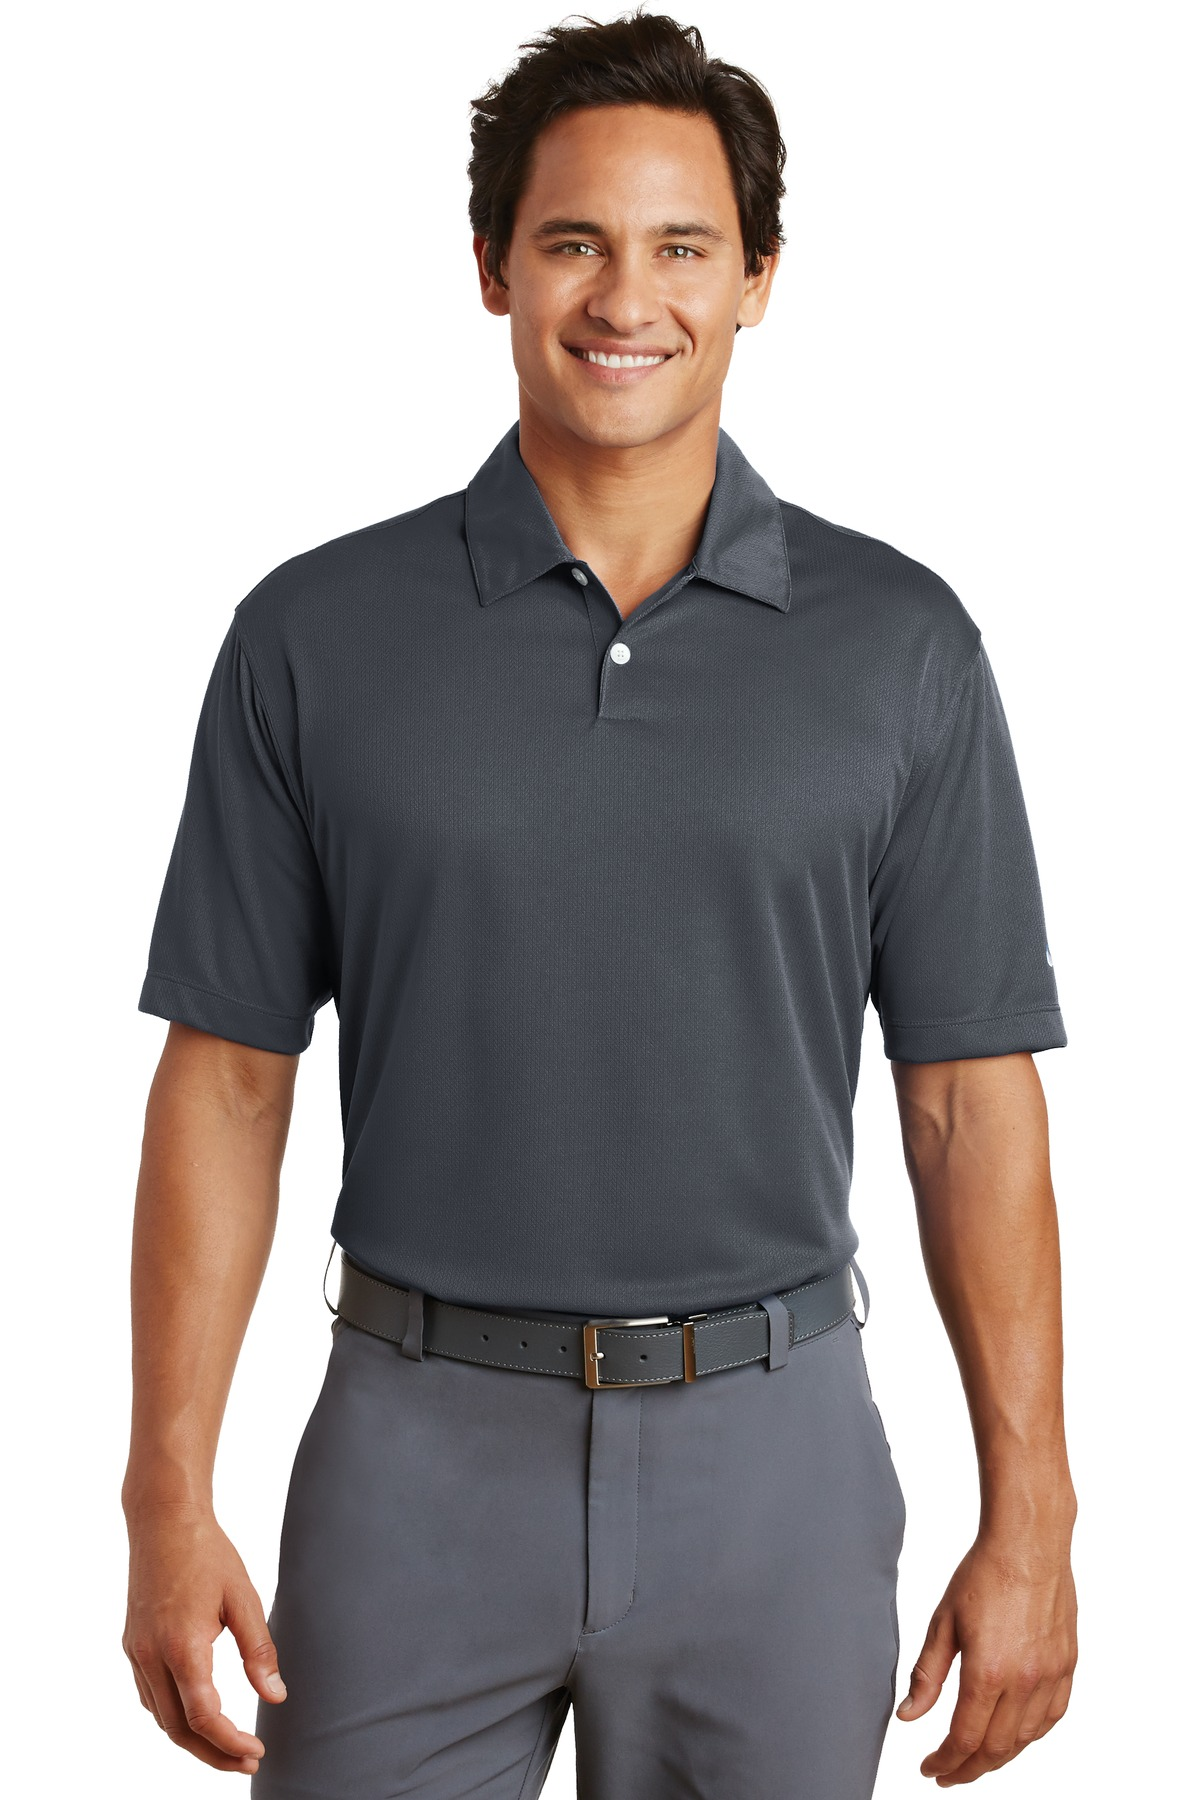 Nike Dri-FIT Pebble Texture Polo. 373749 - Dark Grey